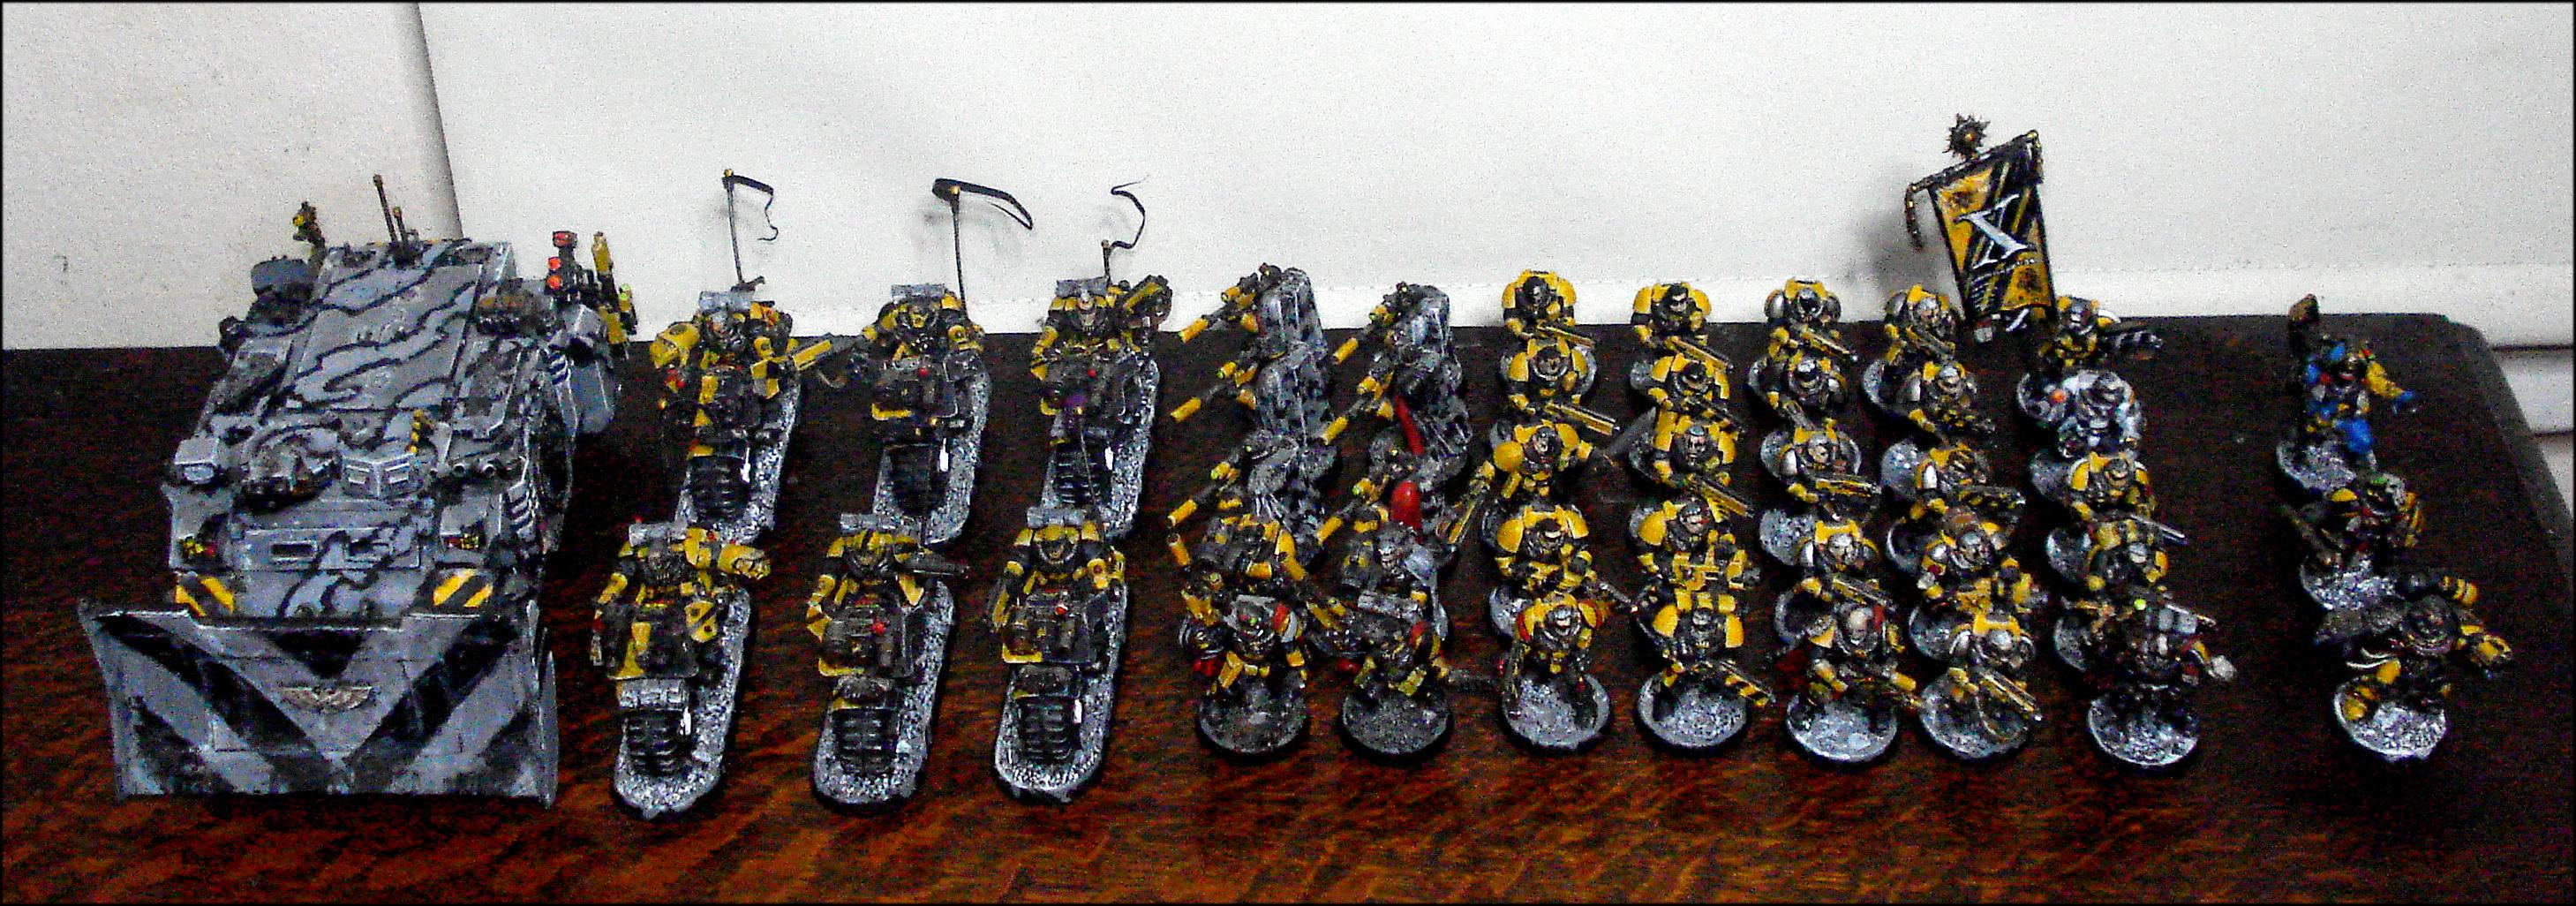 Imperial Fists Army Warhammer 40k Gamesworkshop Scouts 10th